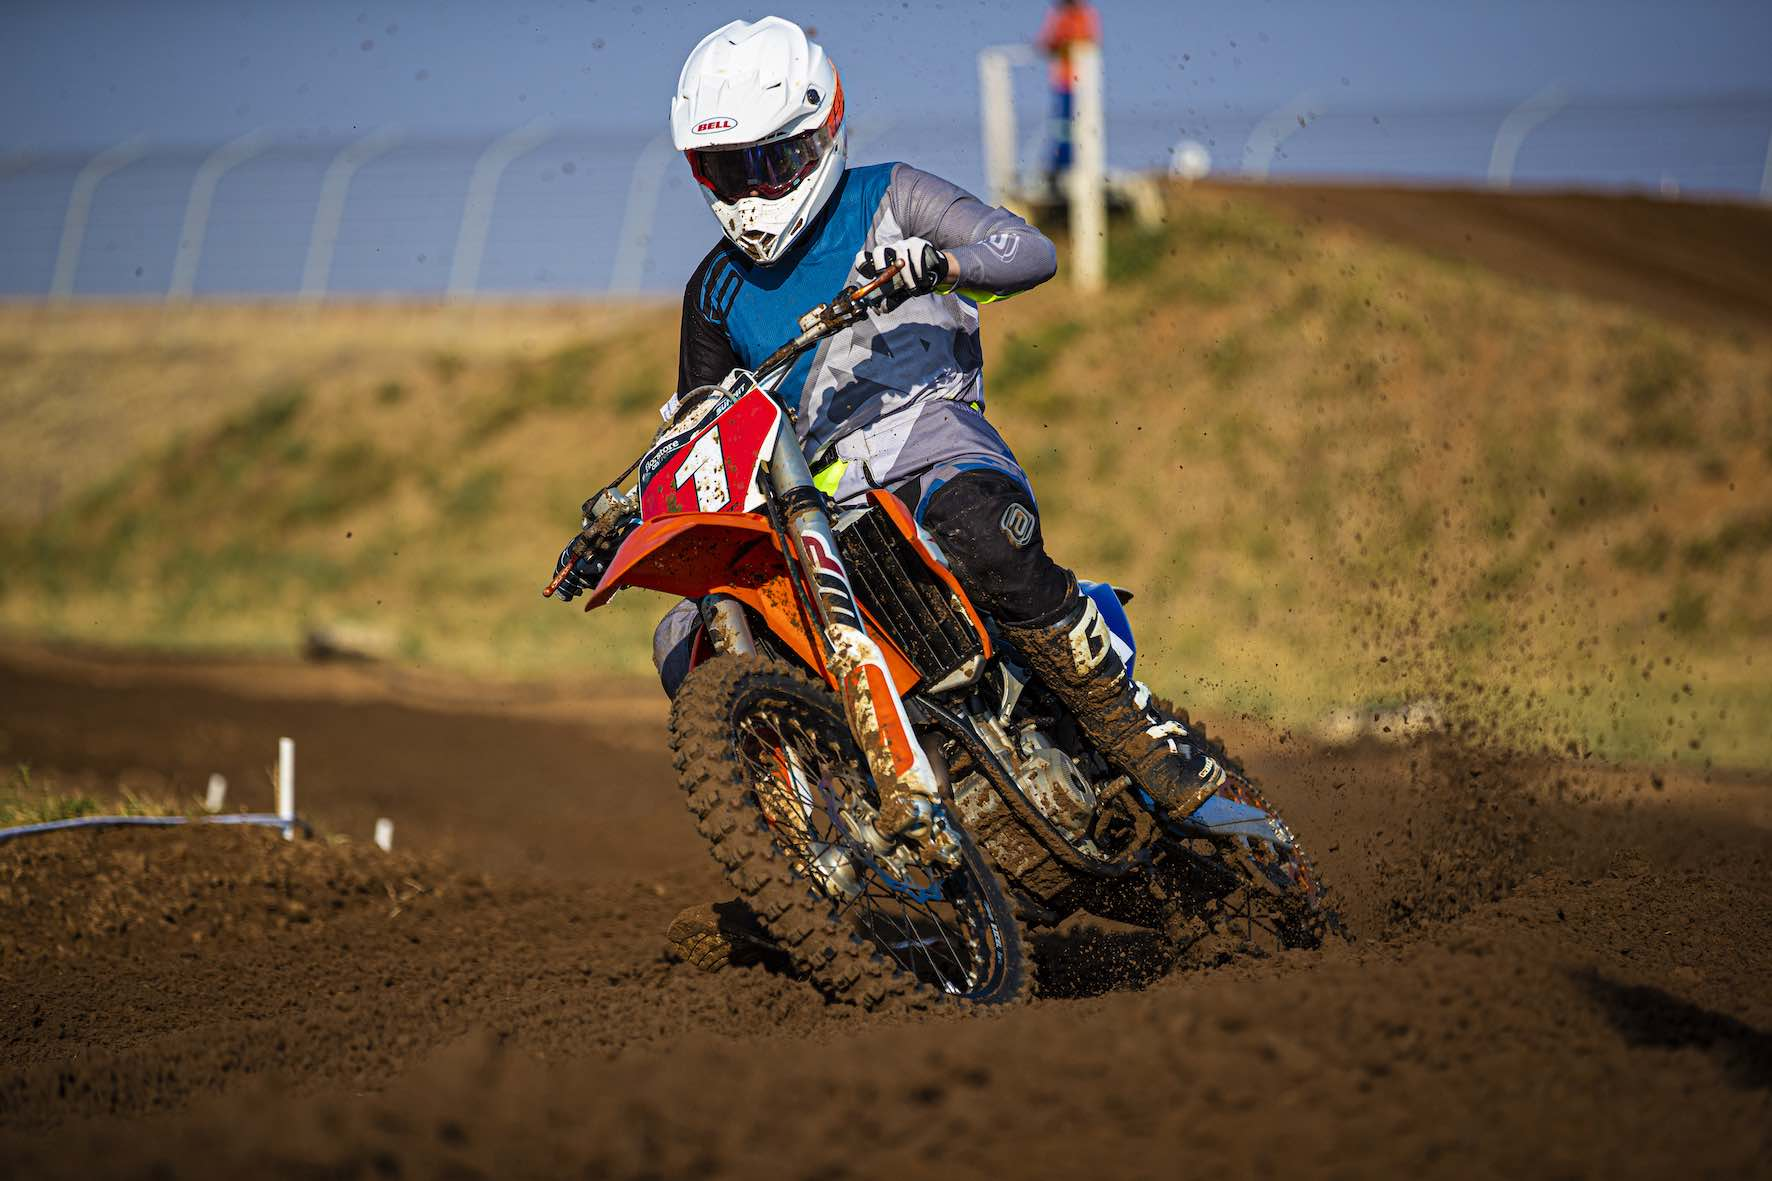 Kayla Raaff racing the penultimate round of the 2019 South African Motocross National in Welkom